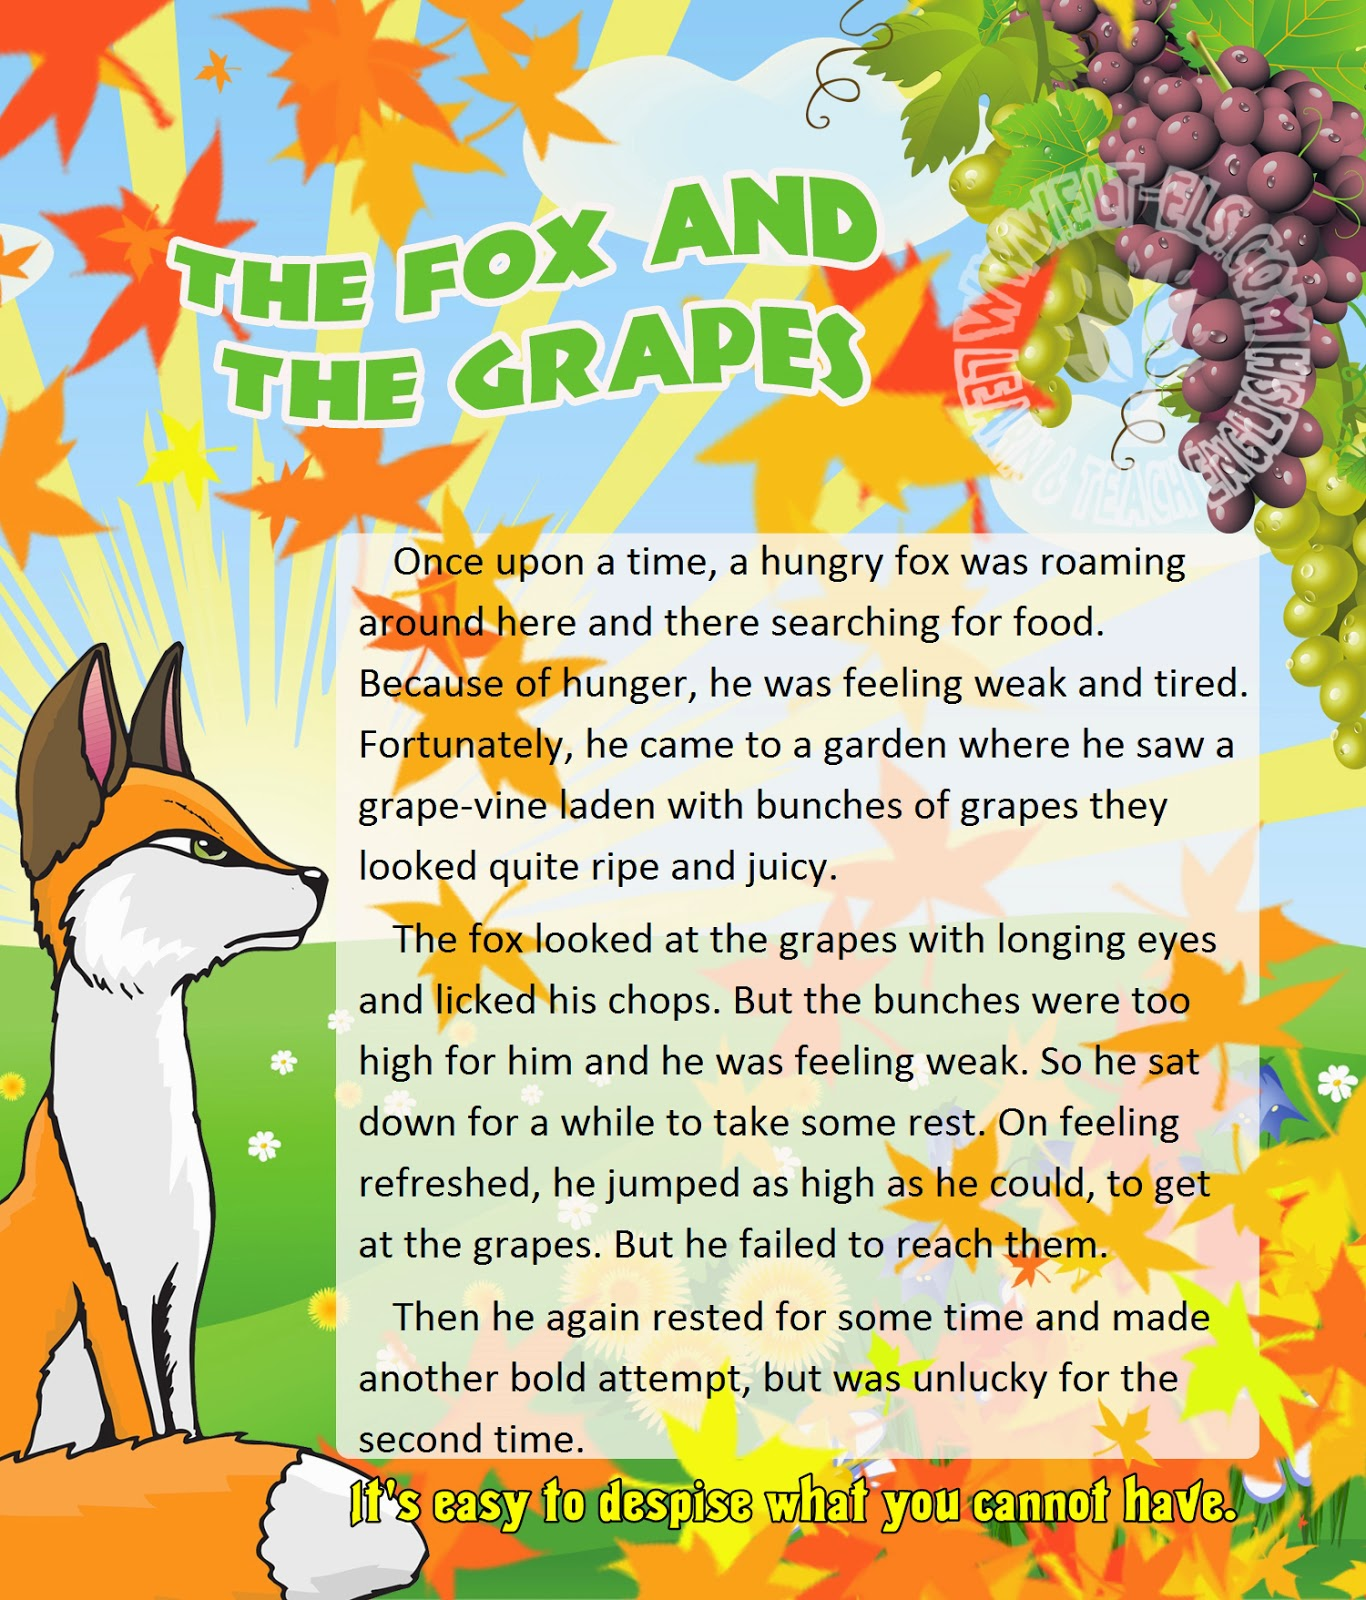 Fox and grapes story video